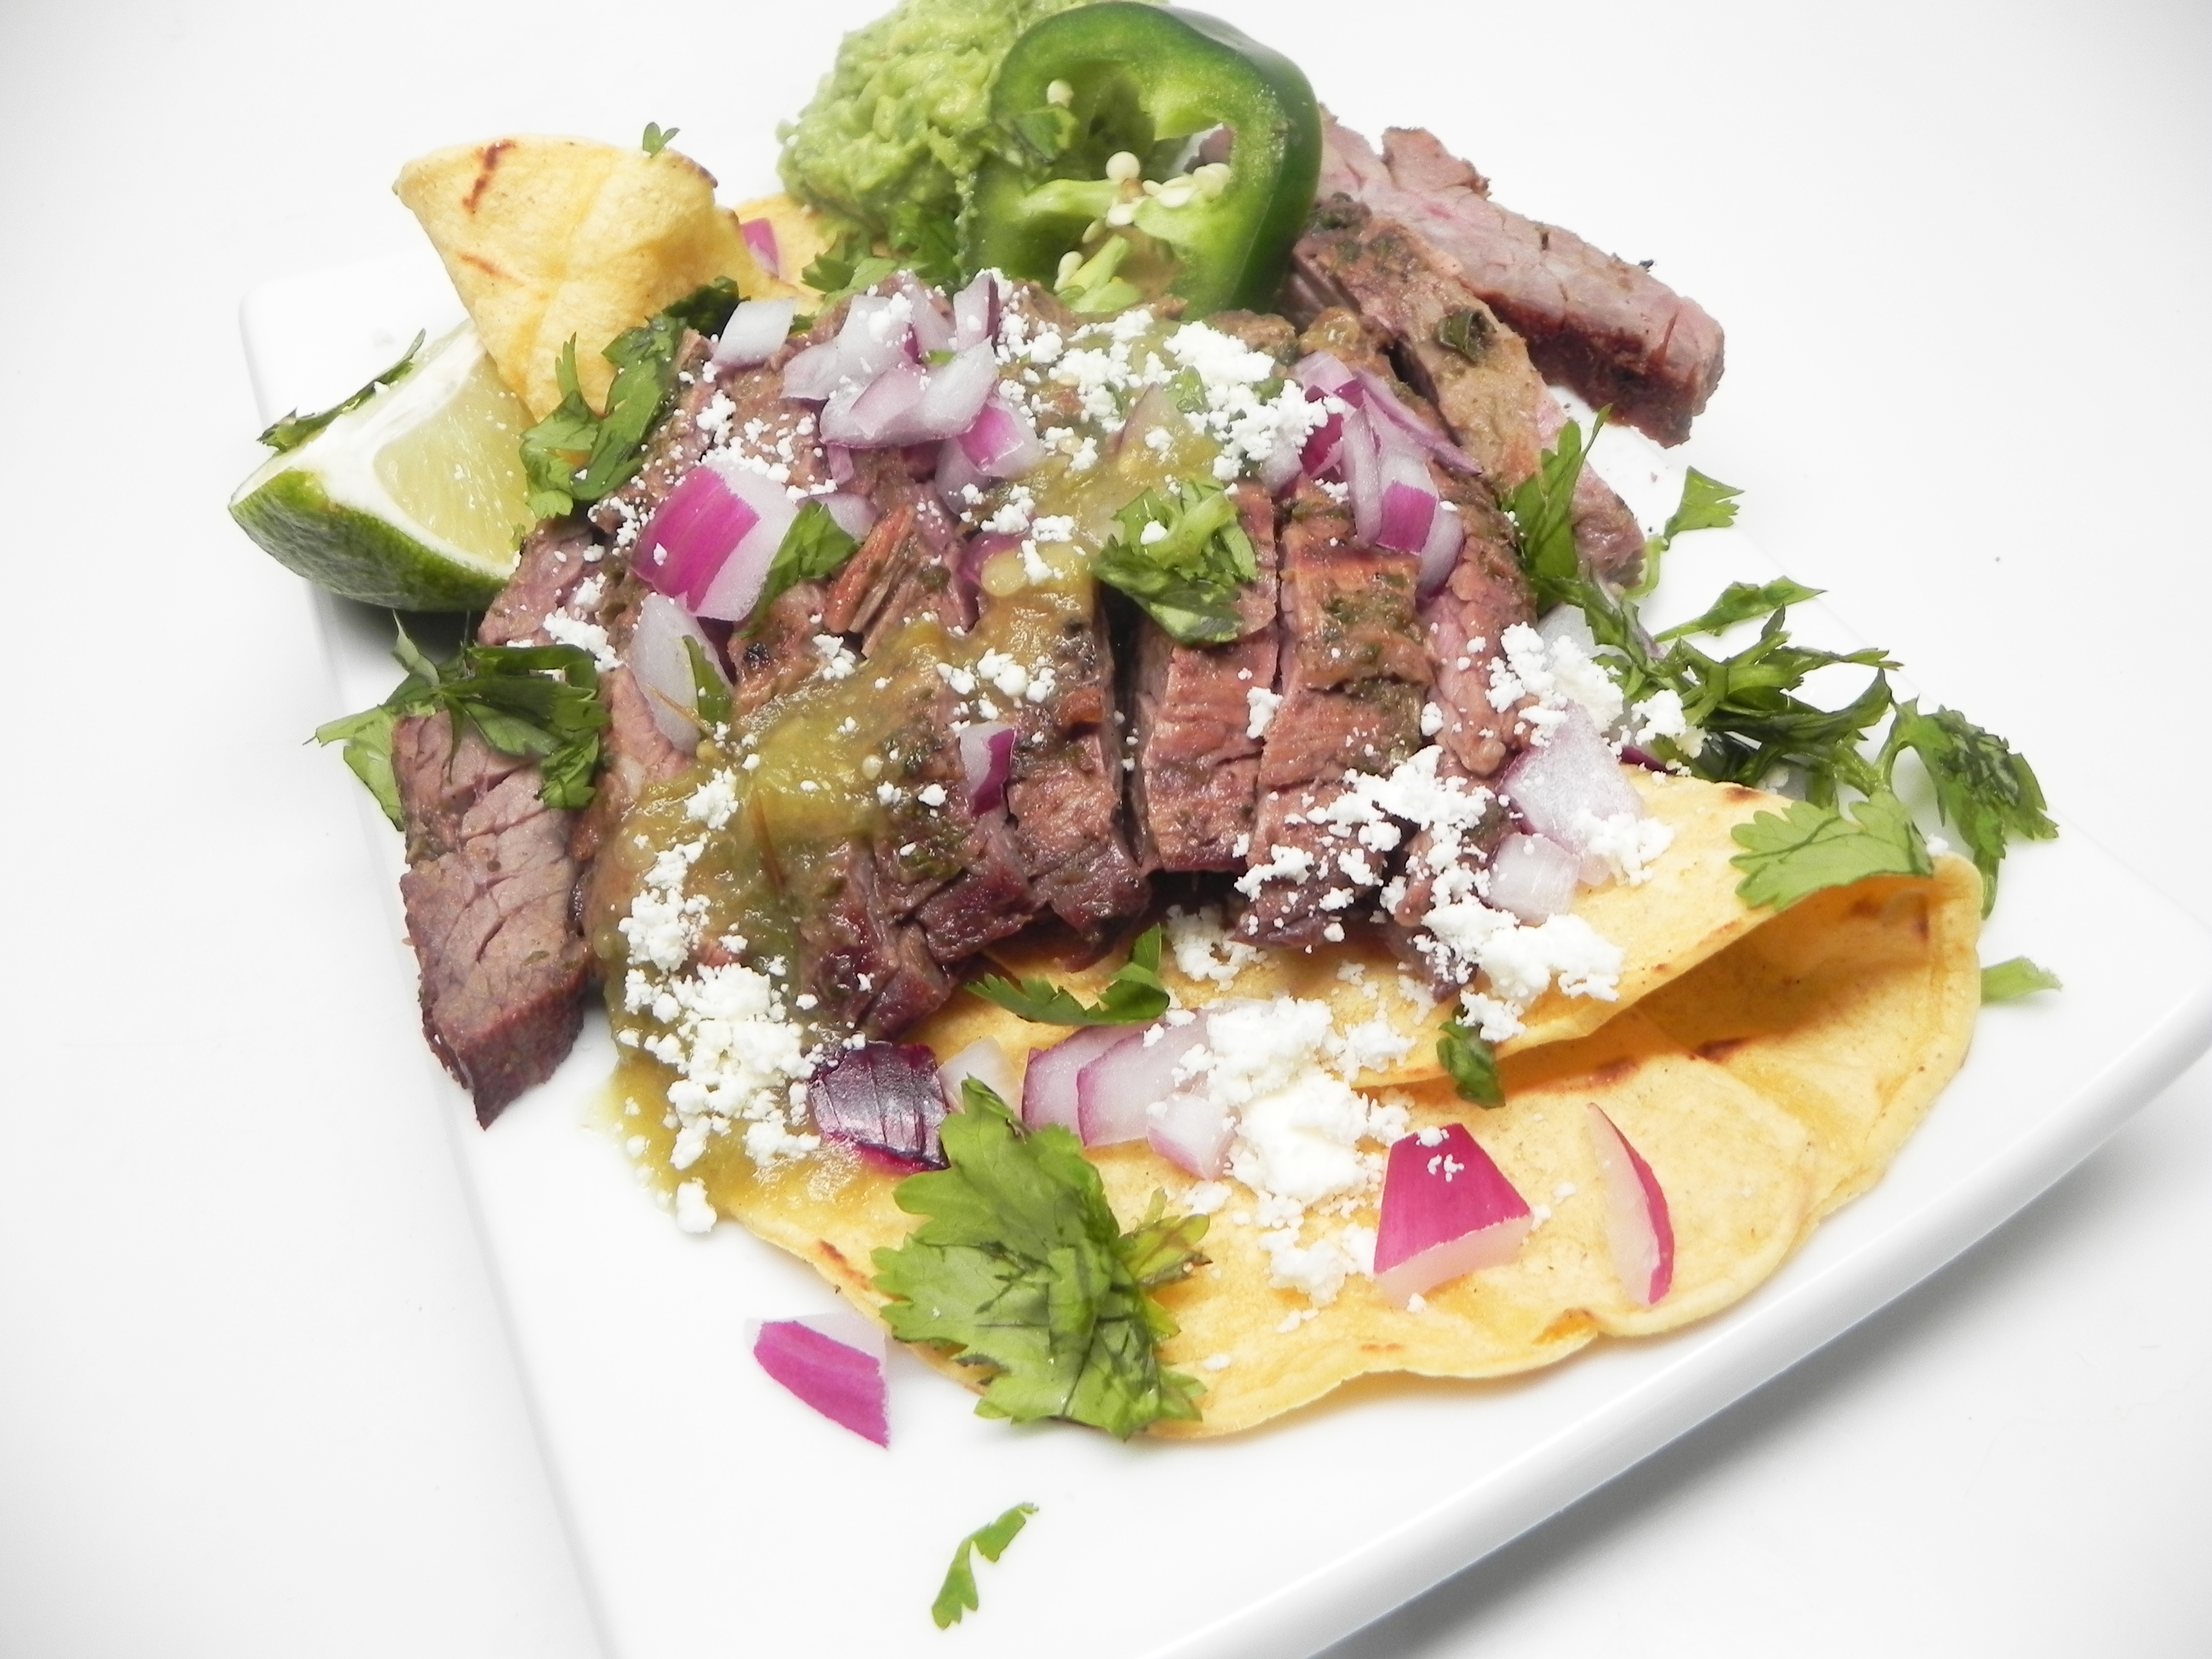 """""""In this true Mexican carne asada recipe, skirt steak is marinated in a cilantro-beer sauce and grilled (asada) to perfection,"""" says Crema. """"Serve with a side of drunken beans and corn tortillas. If preferred, substitute flank steak for the skirt steak."""""""